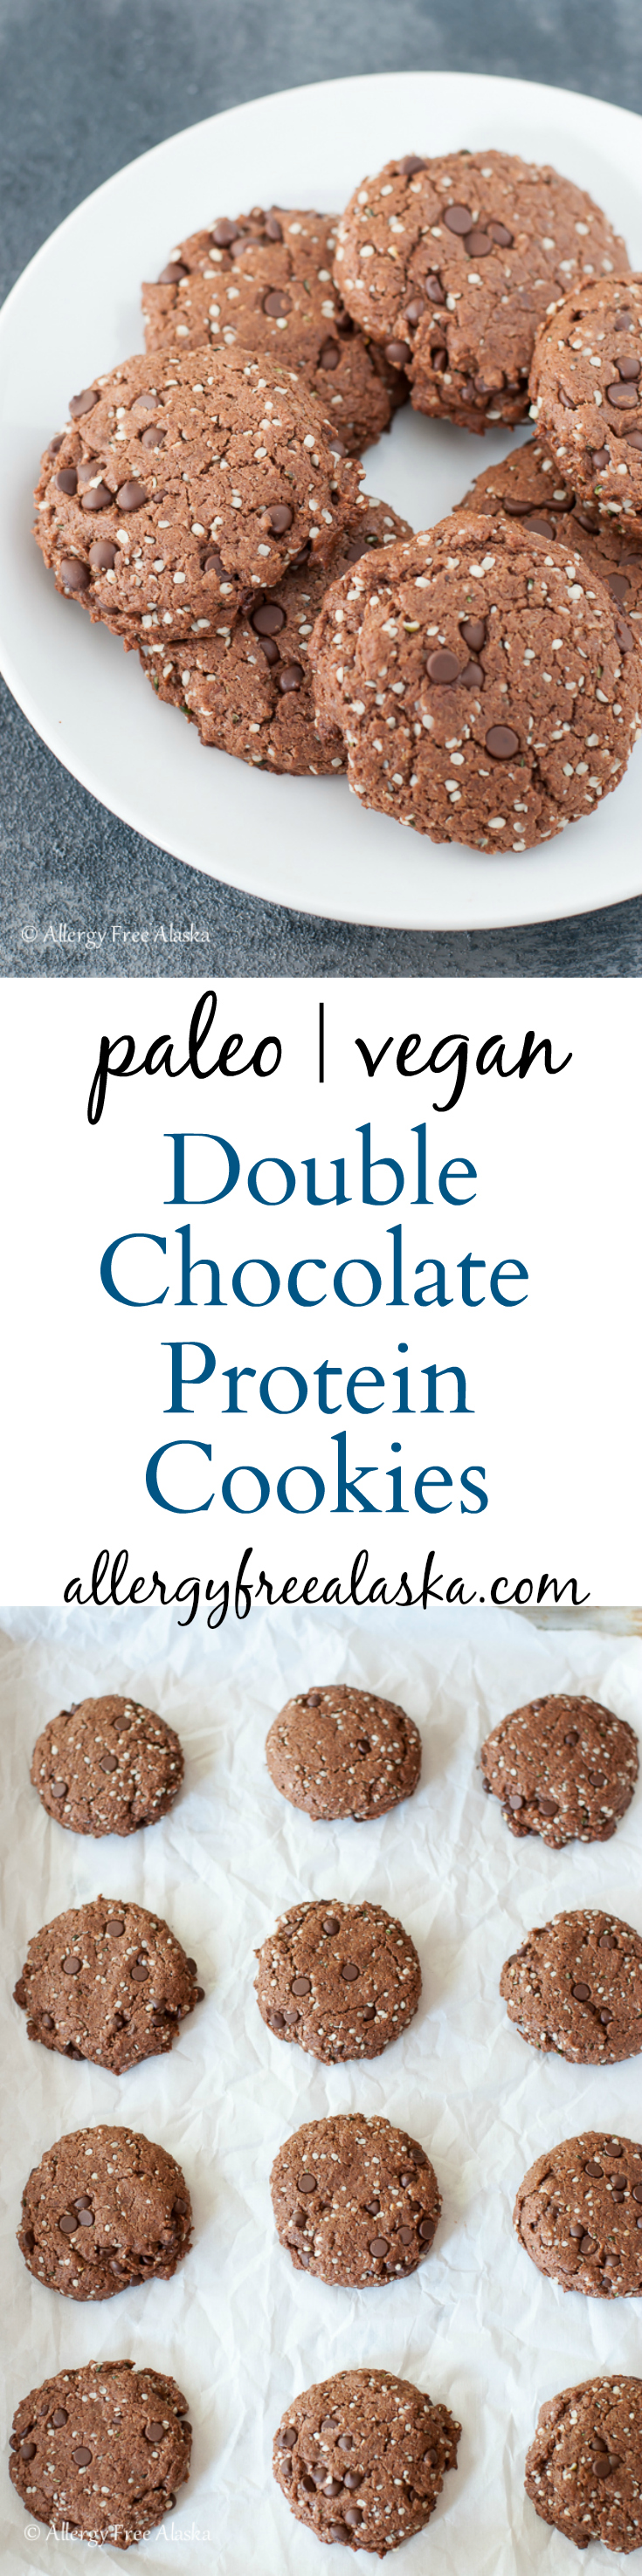 Double Chocolate Protein Cookies Recipe from Allergy Free Alaska